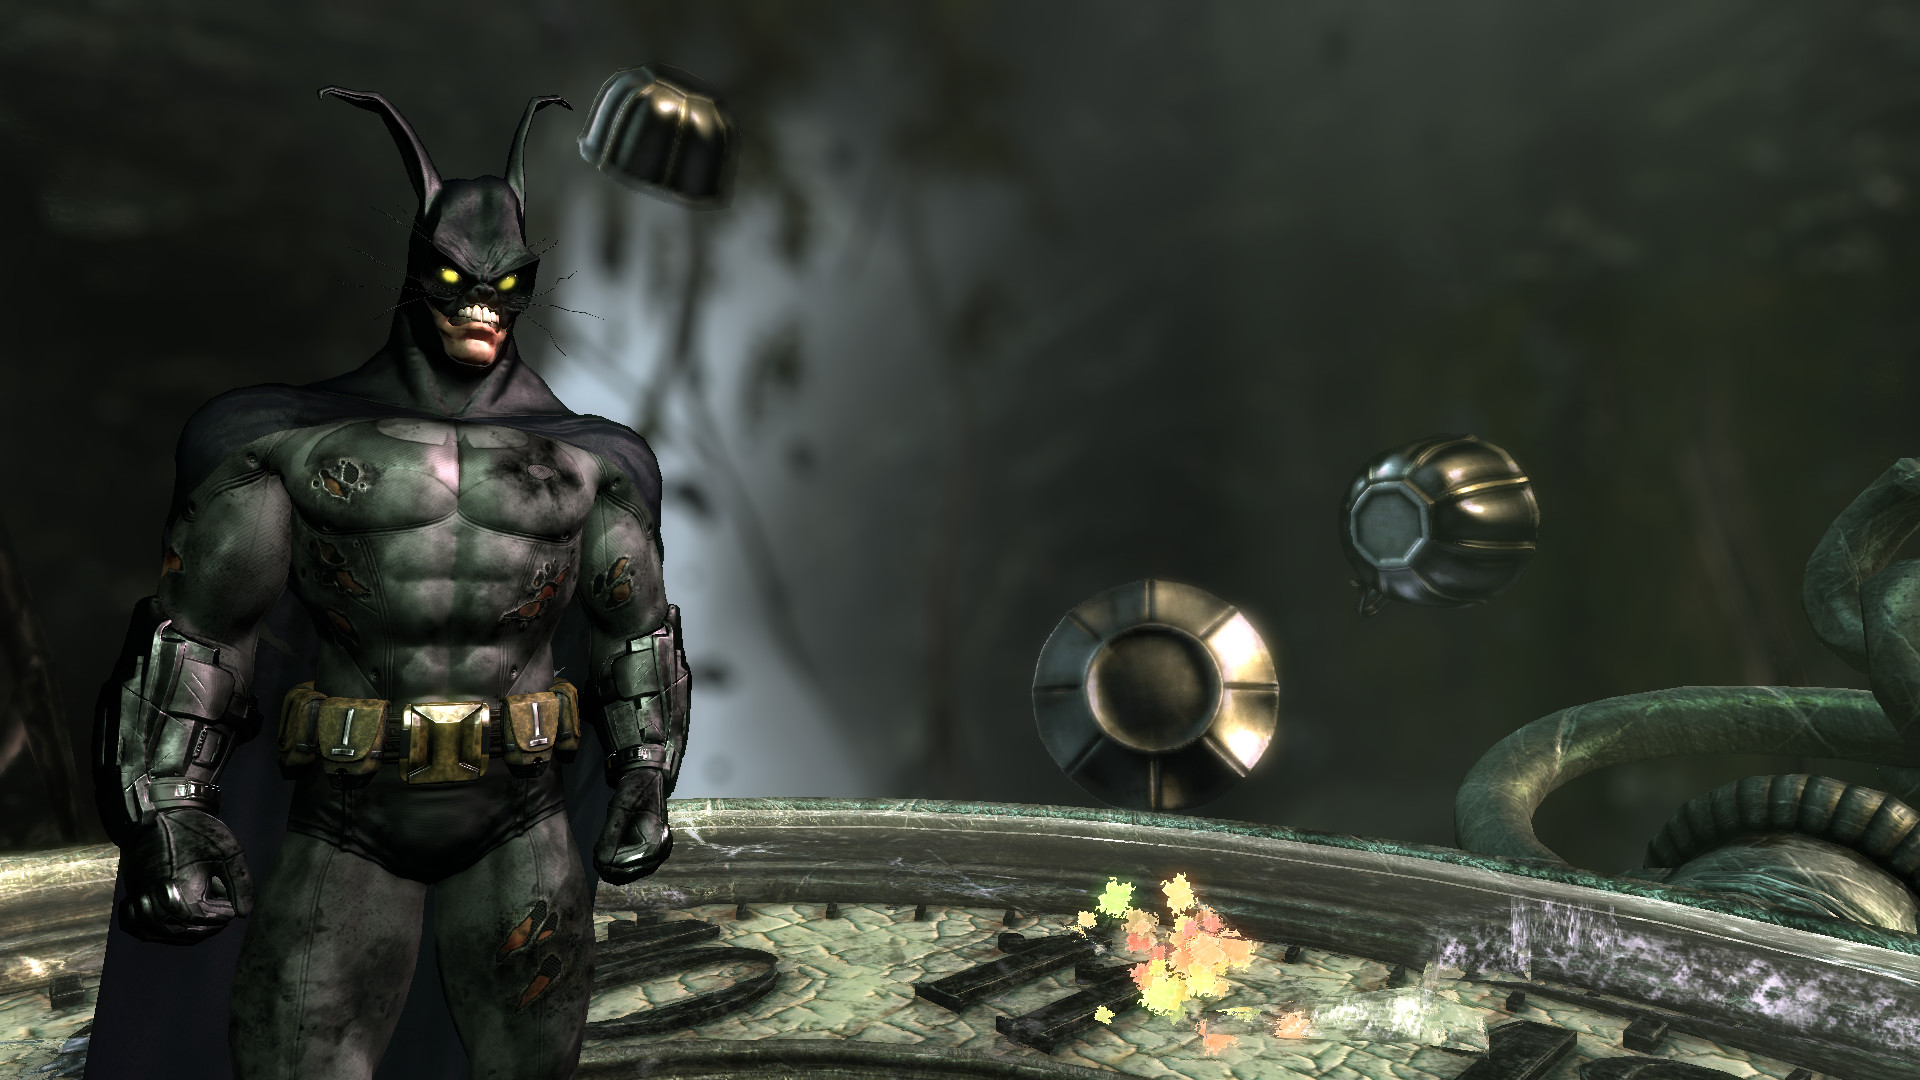 Batman under the effects of the Scarecrow